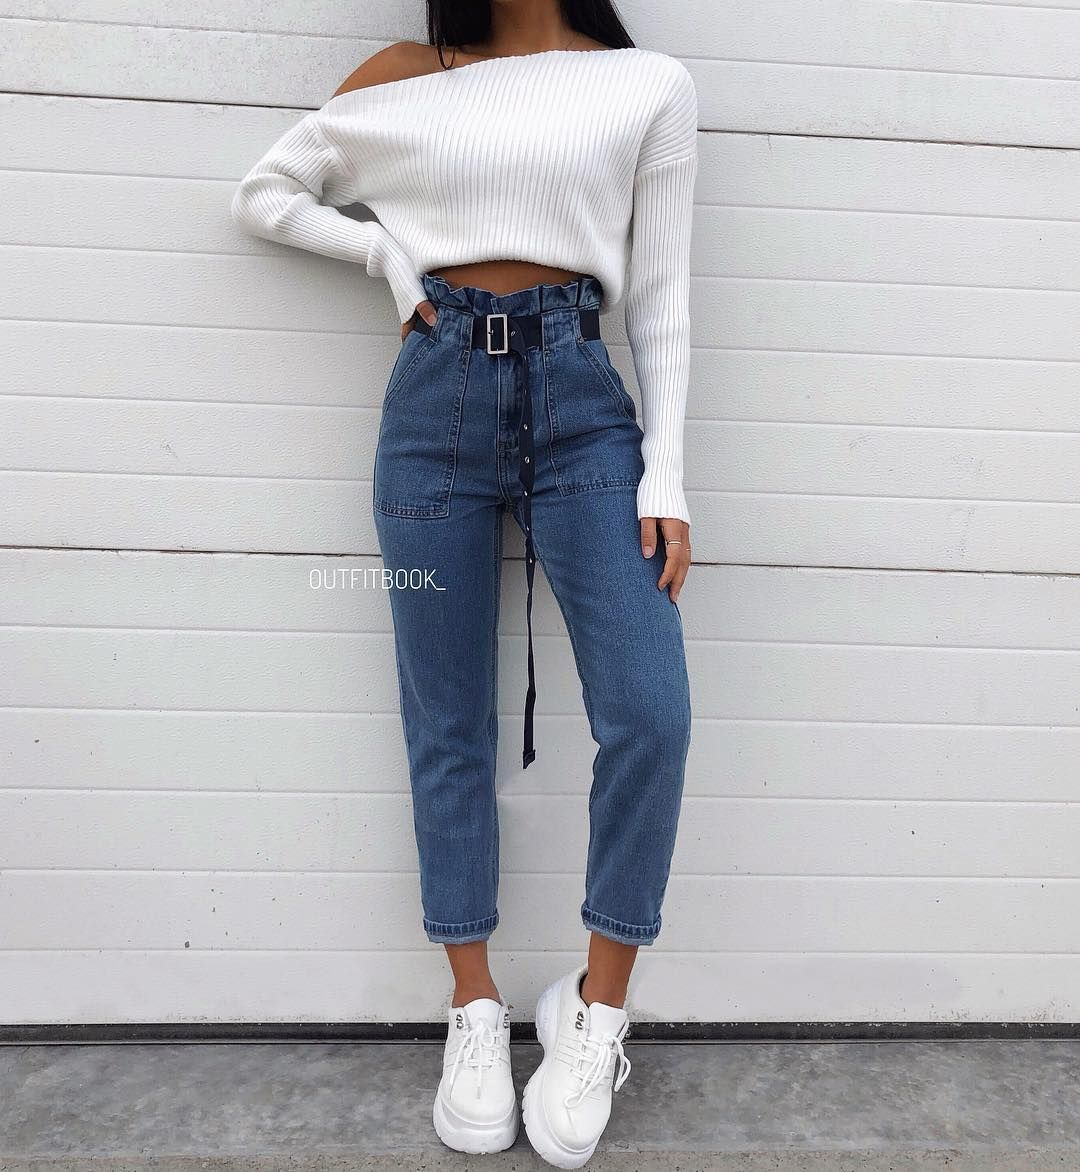 a227c16714 eekend 💙 ✓ casual and comfy look 😍😍😍 |🔎 Jean | Things to ...